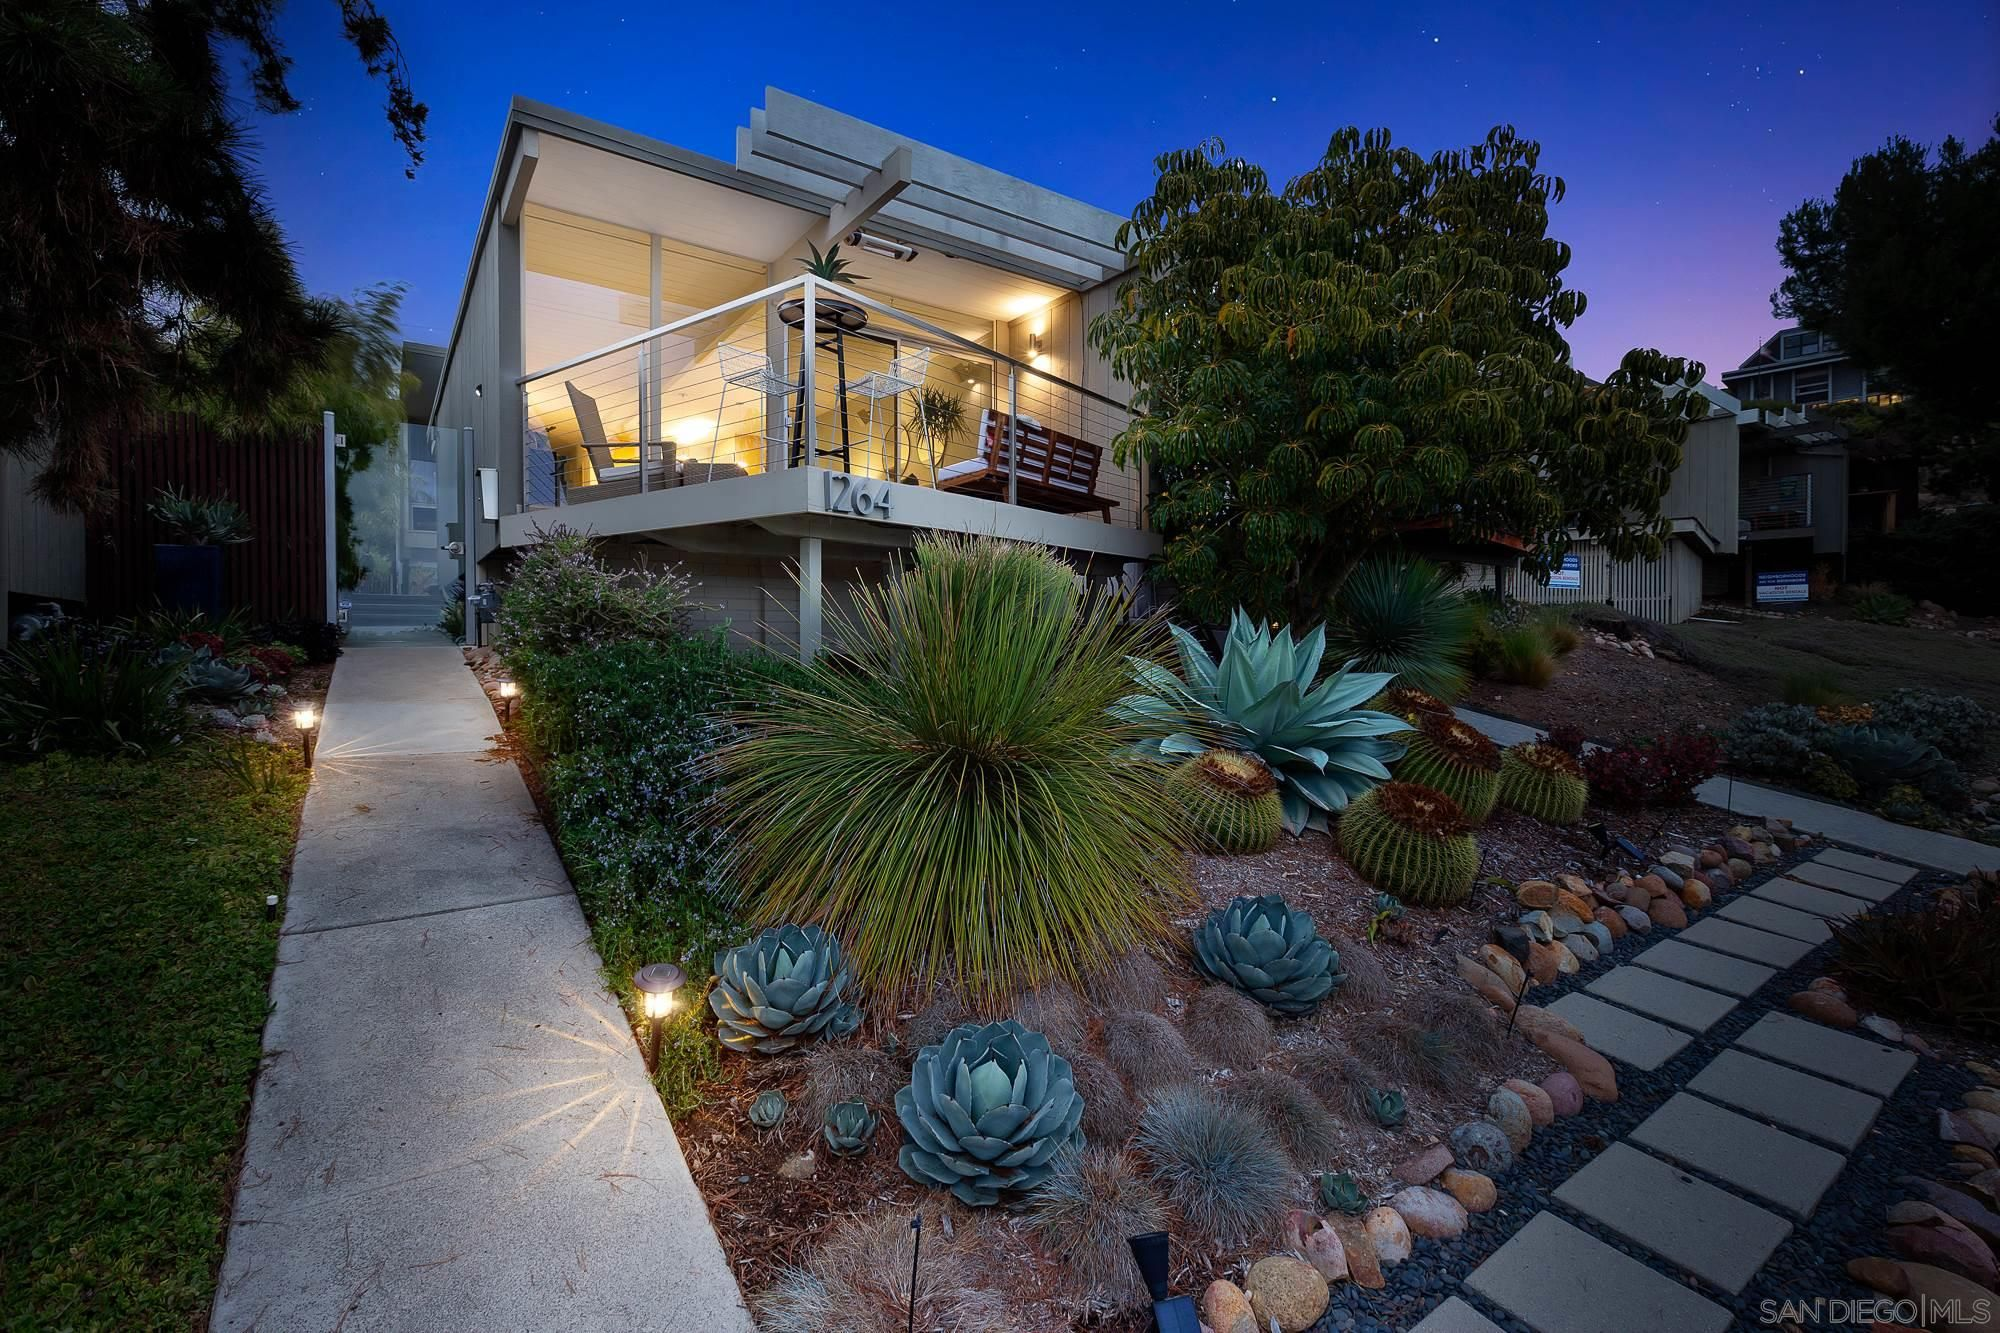 Main Photo: PACIFIC BEACH House for sale : 2 bedrooms : 1264 Agate St in San Diego